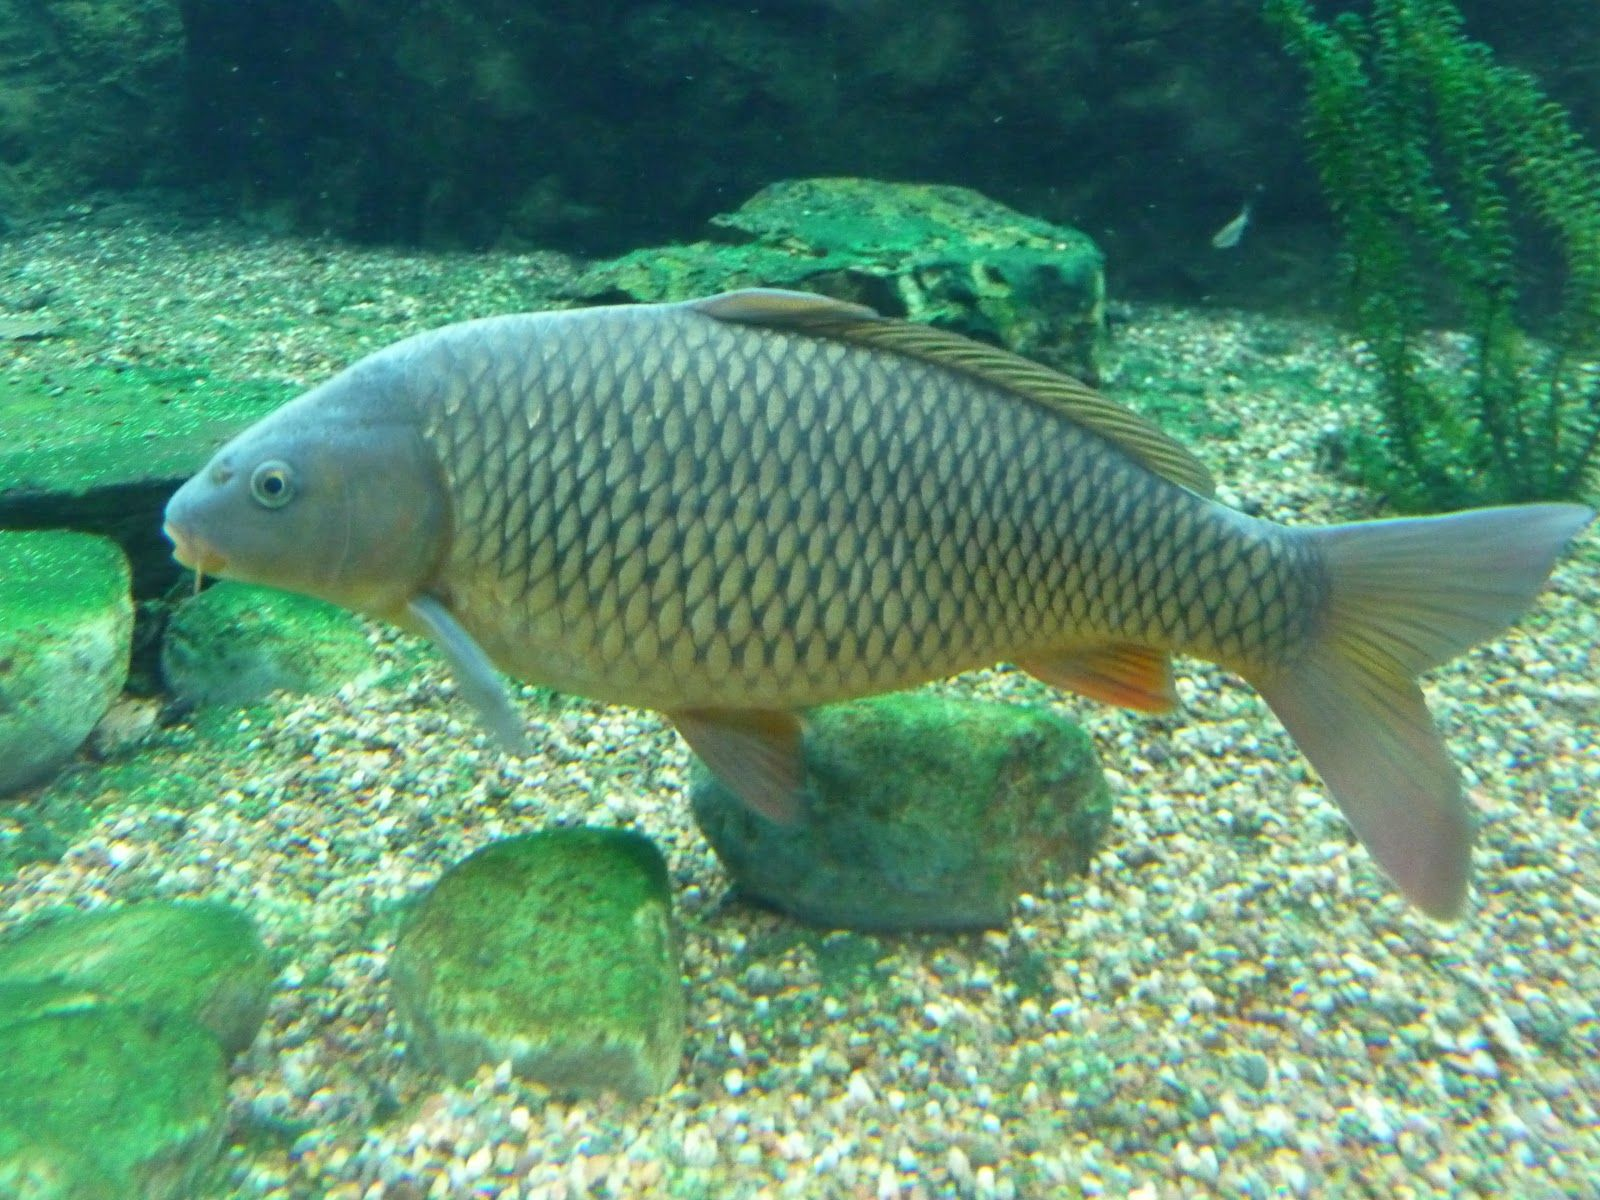 Virginia Fishes Common Carp Common Carp Fish Carp Fishing